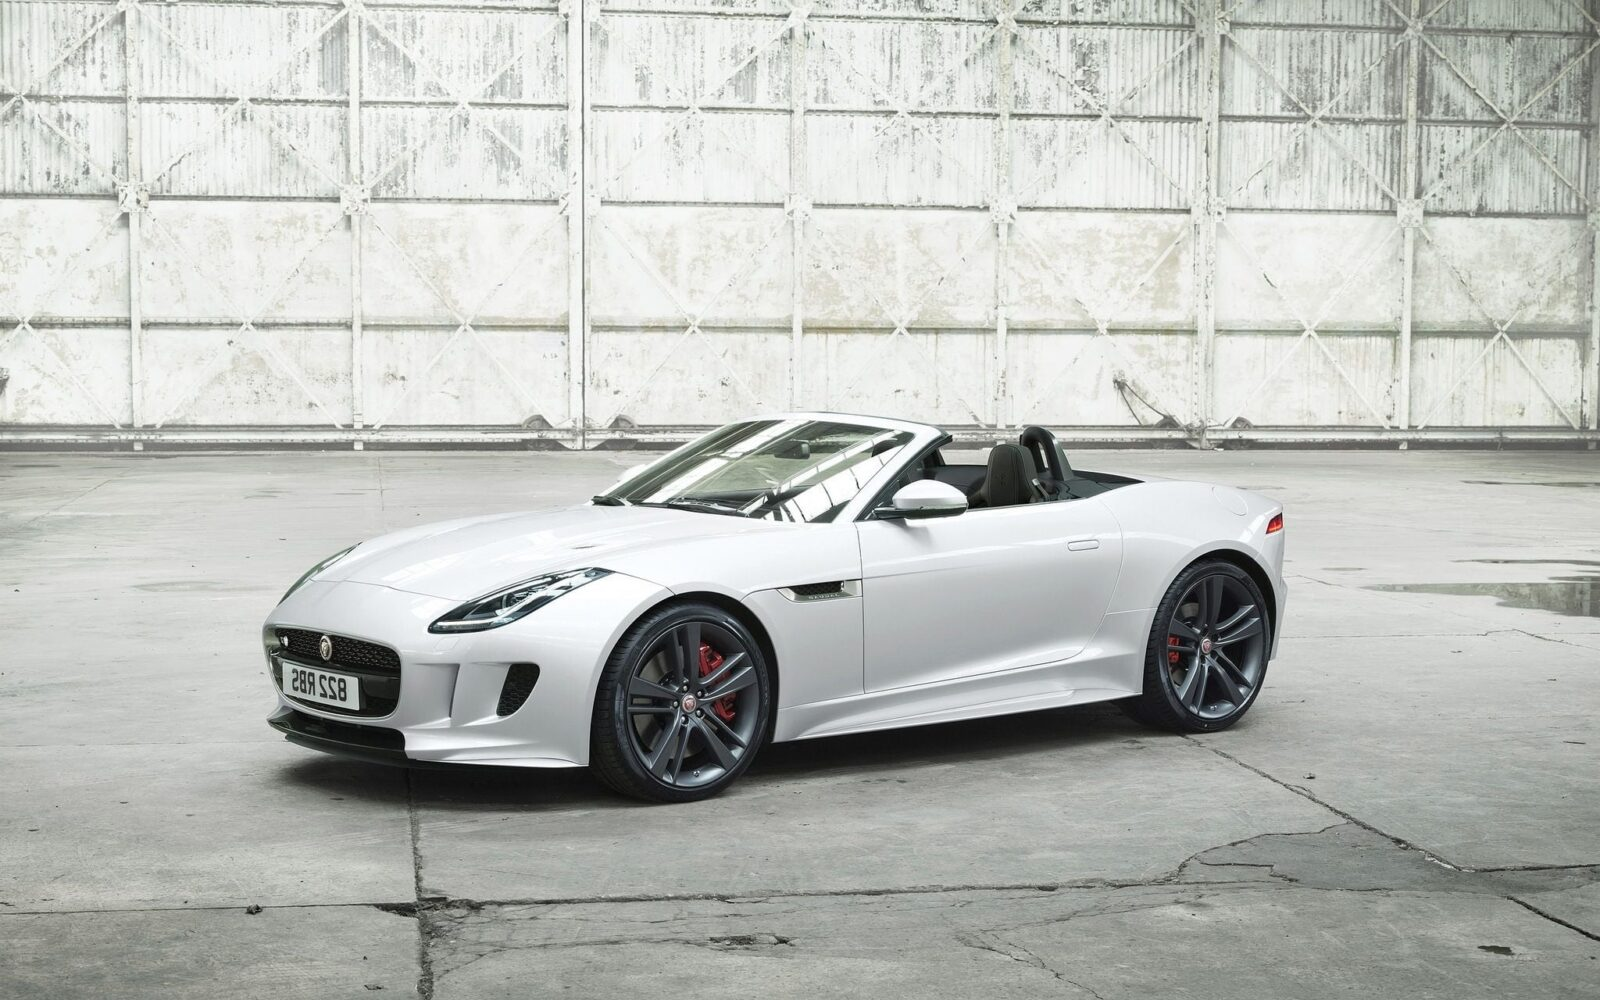 Jaguar Car Wallpaper Wallpapers High Quality: 2016 Jaguar F Type HD Wallpapers High Quality